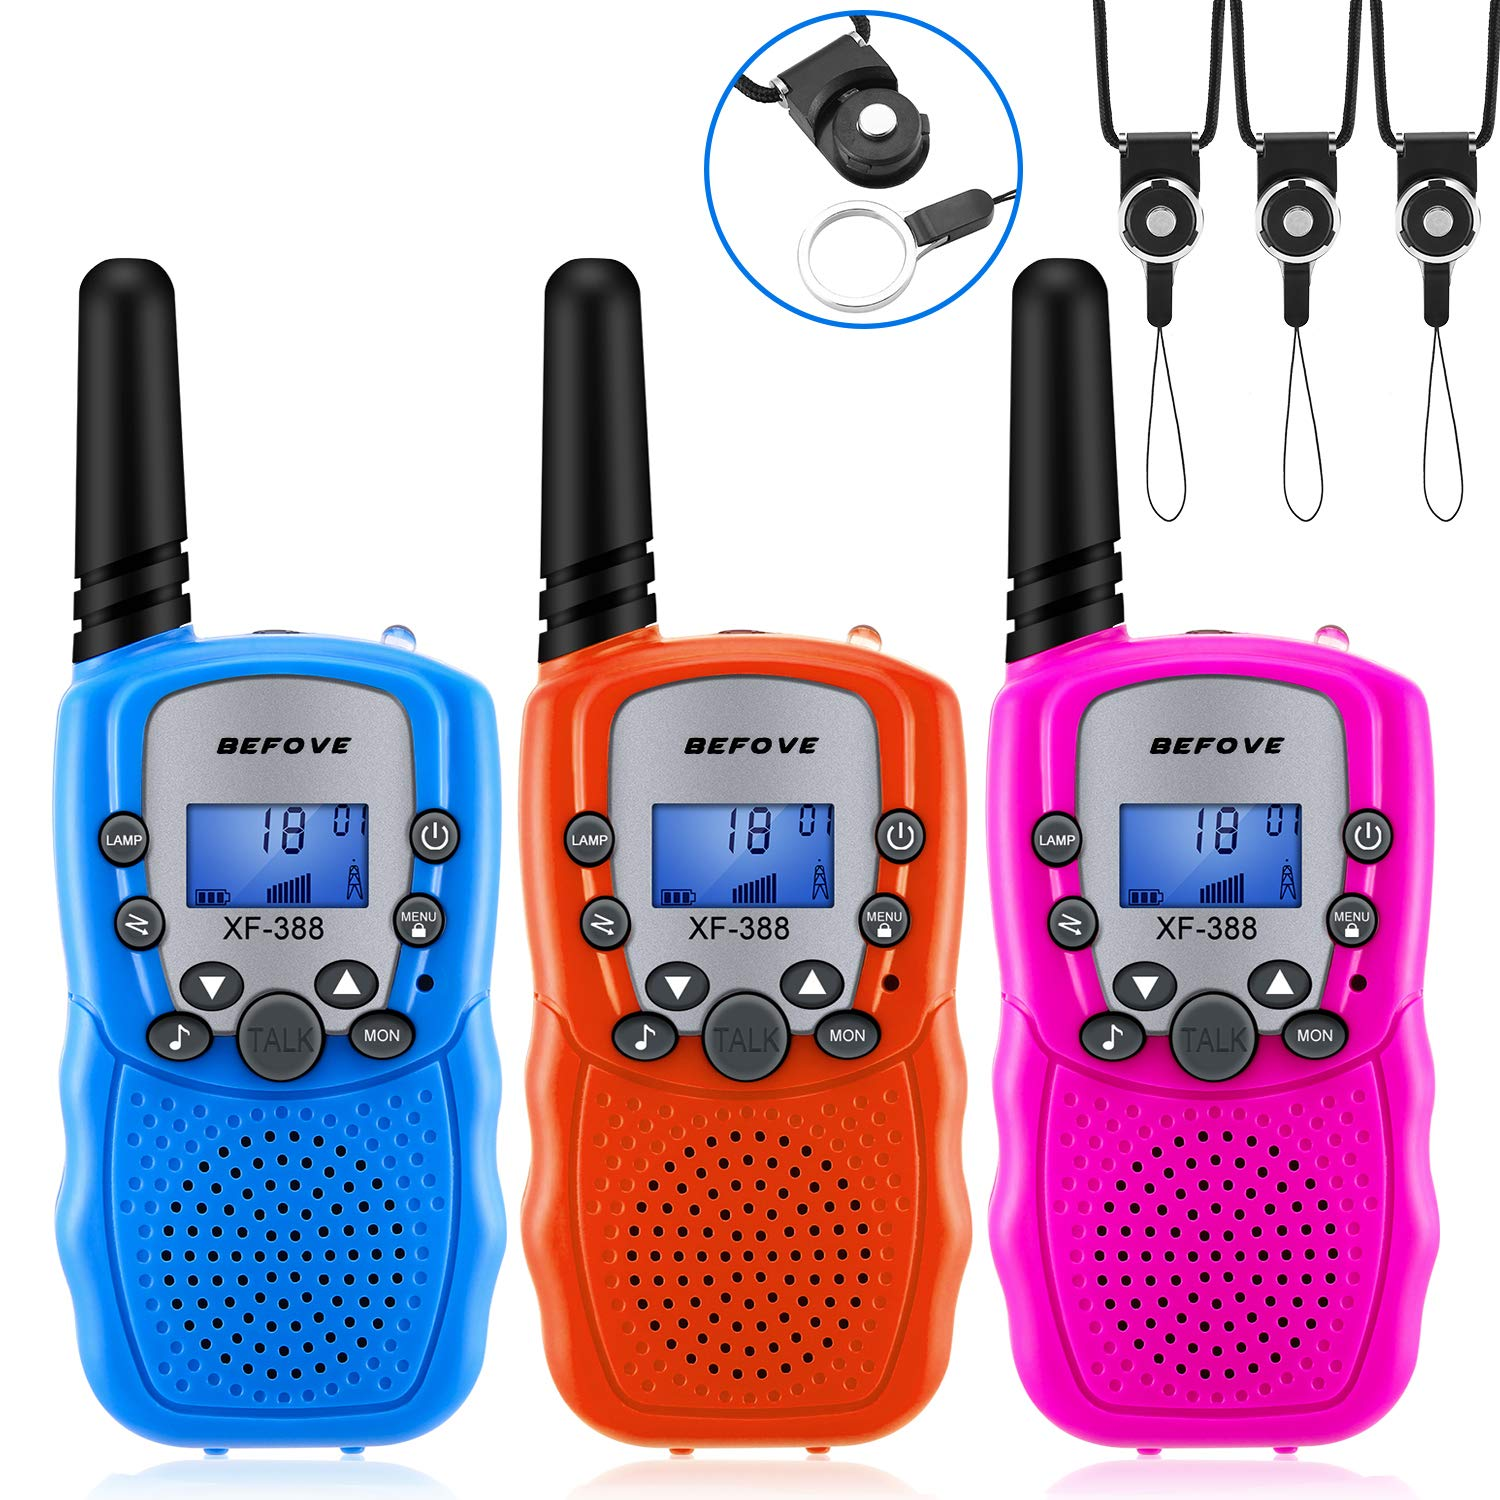 Befove Walkie Talkies, 3 x Walkie Talkie Kids 22 Channel Handheld FRS Transceiver Two Way Radios Long Range Walky Talky for Kids Adults, Camping Hiking Outdoor Use with Straps